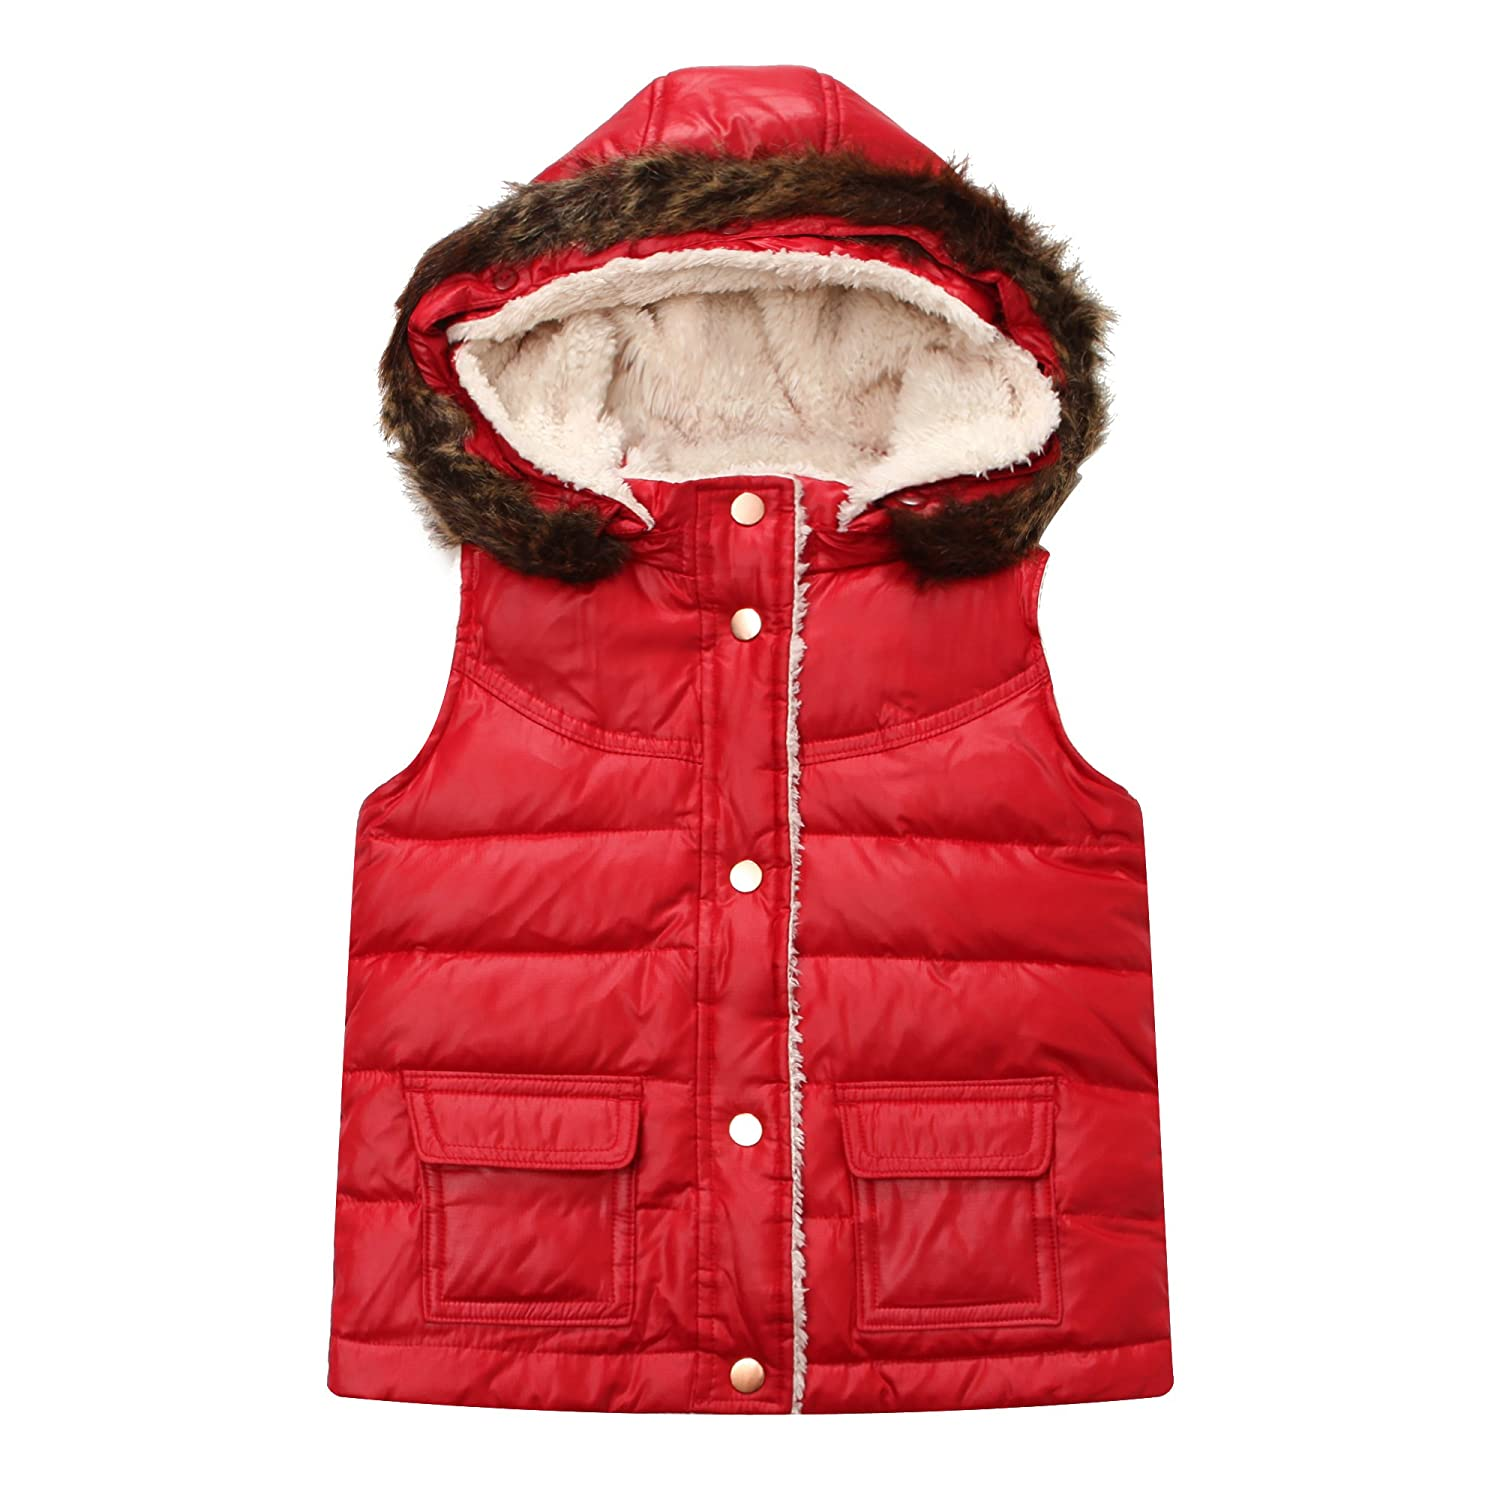 Richie House Little Girls' Padding Vest with Detachable Hood RH1095